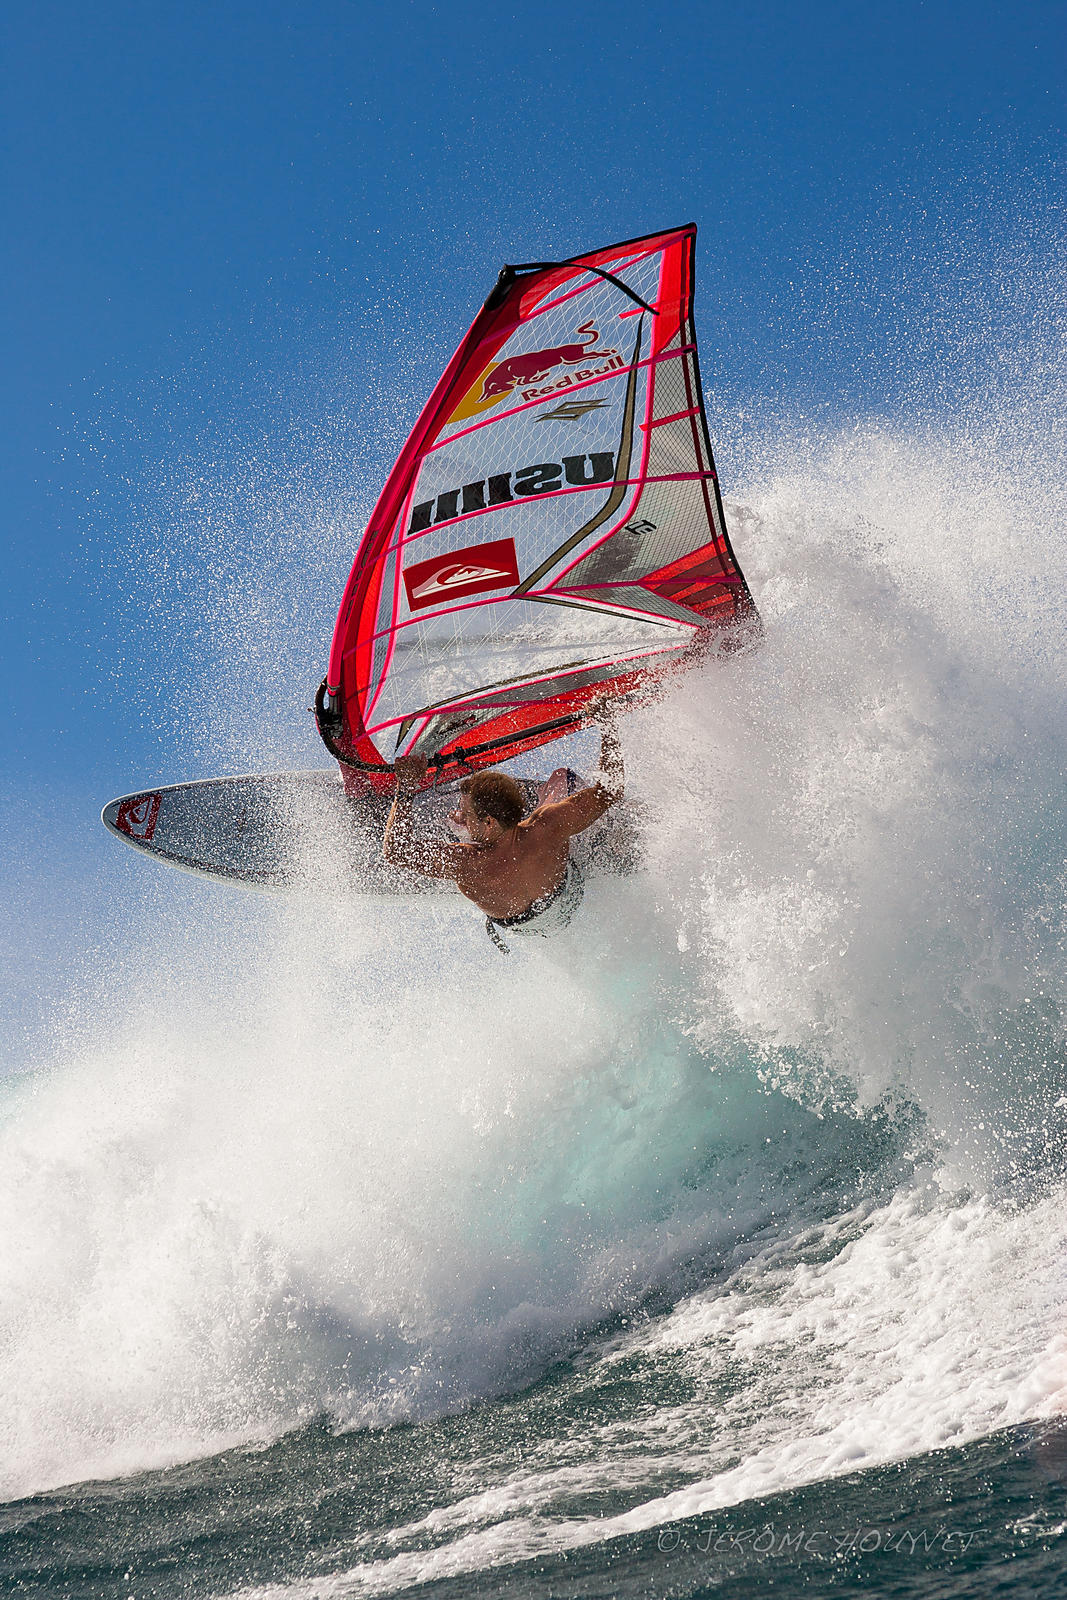 Robby Naish, the King